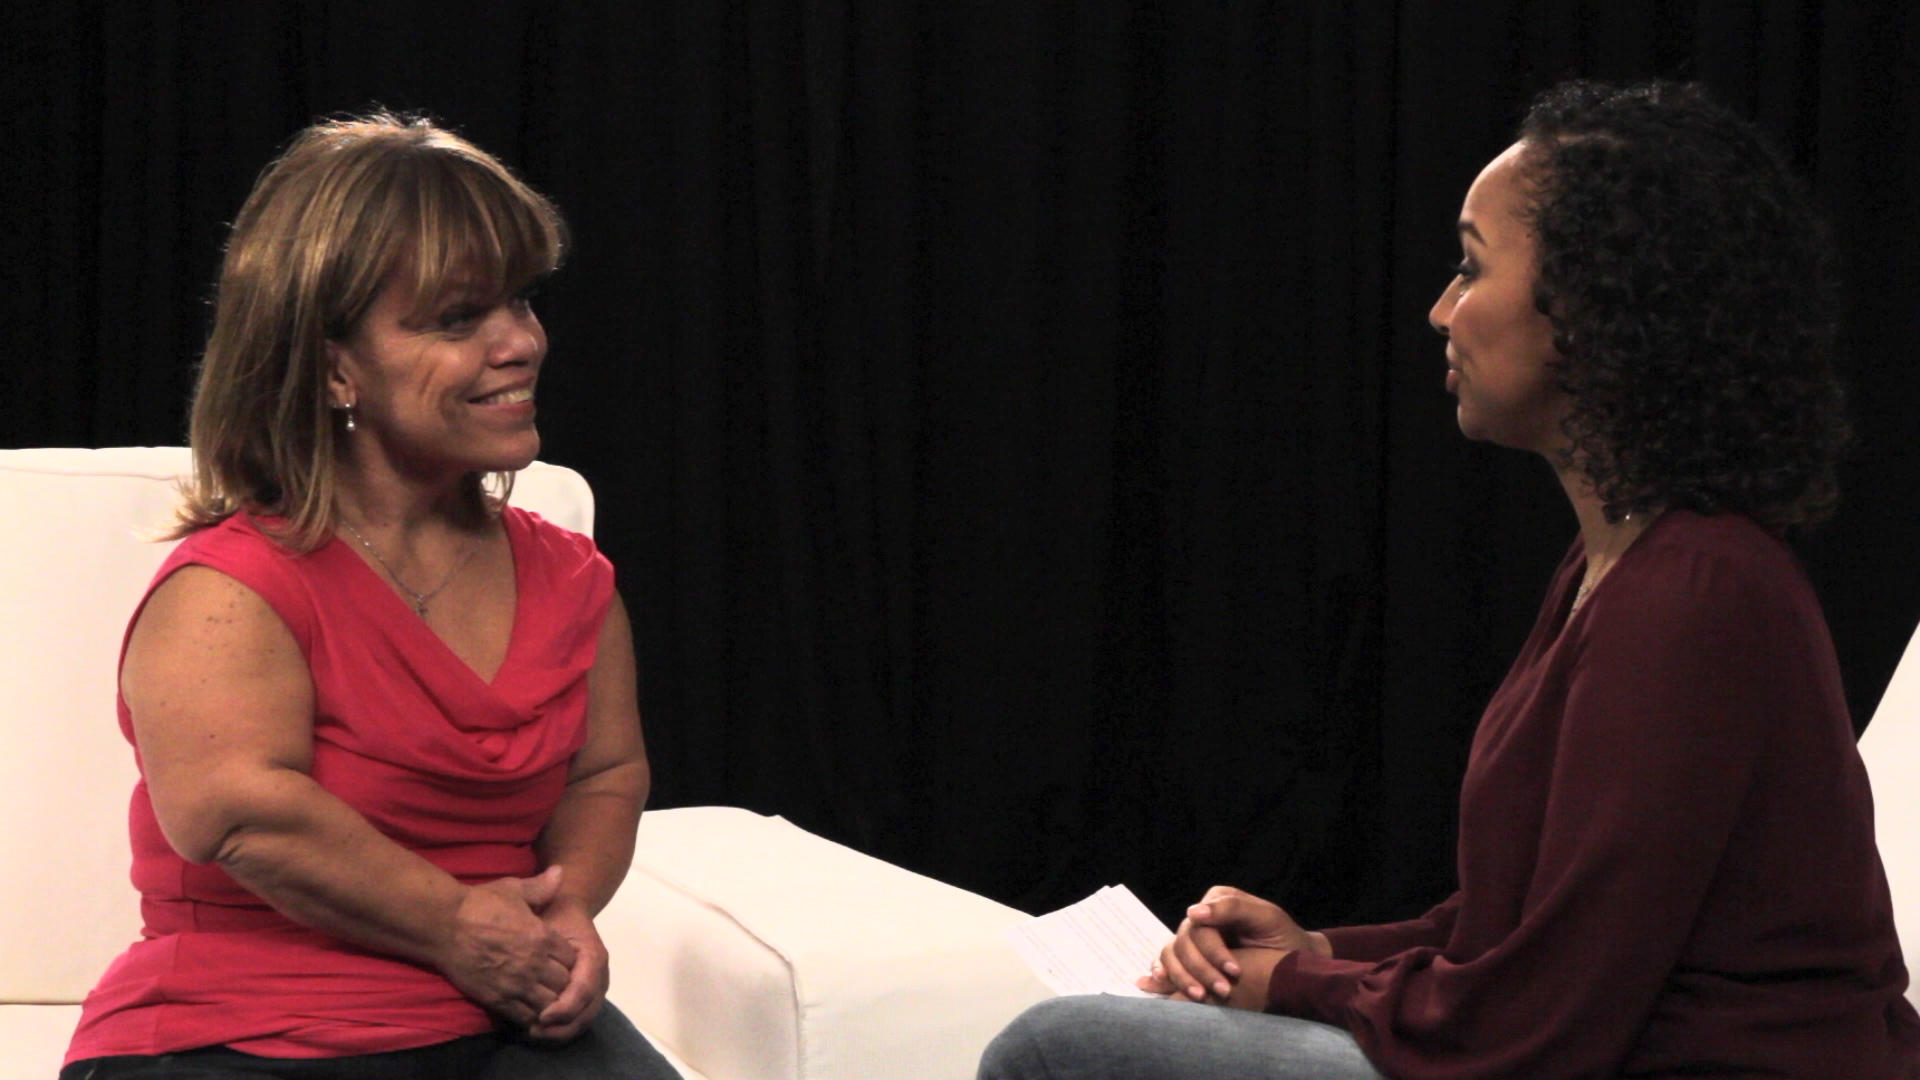 Amy Roloff Discusses Her Life After Divorce aka Her